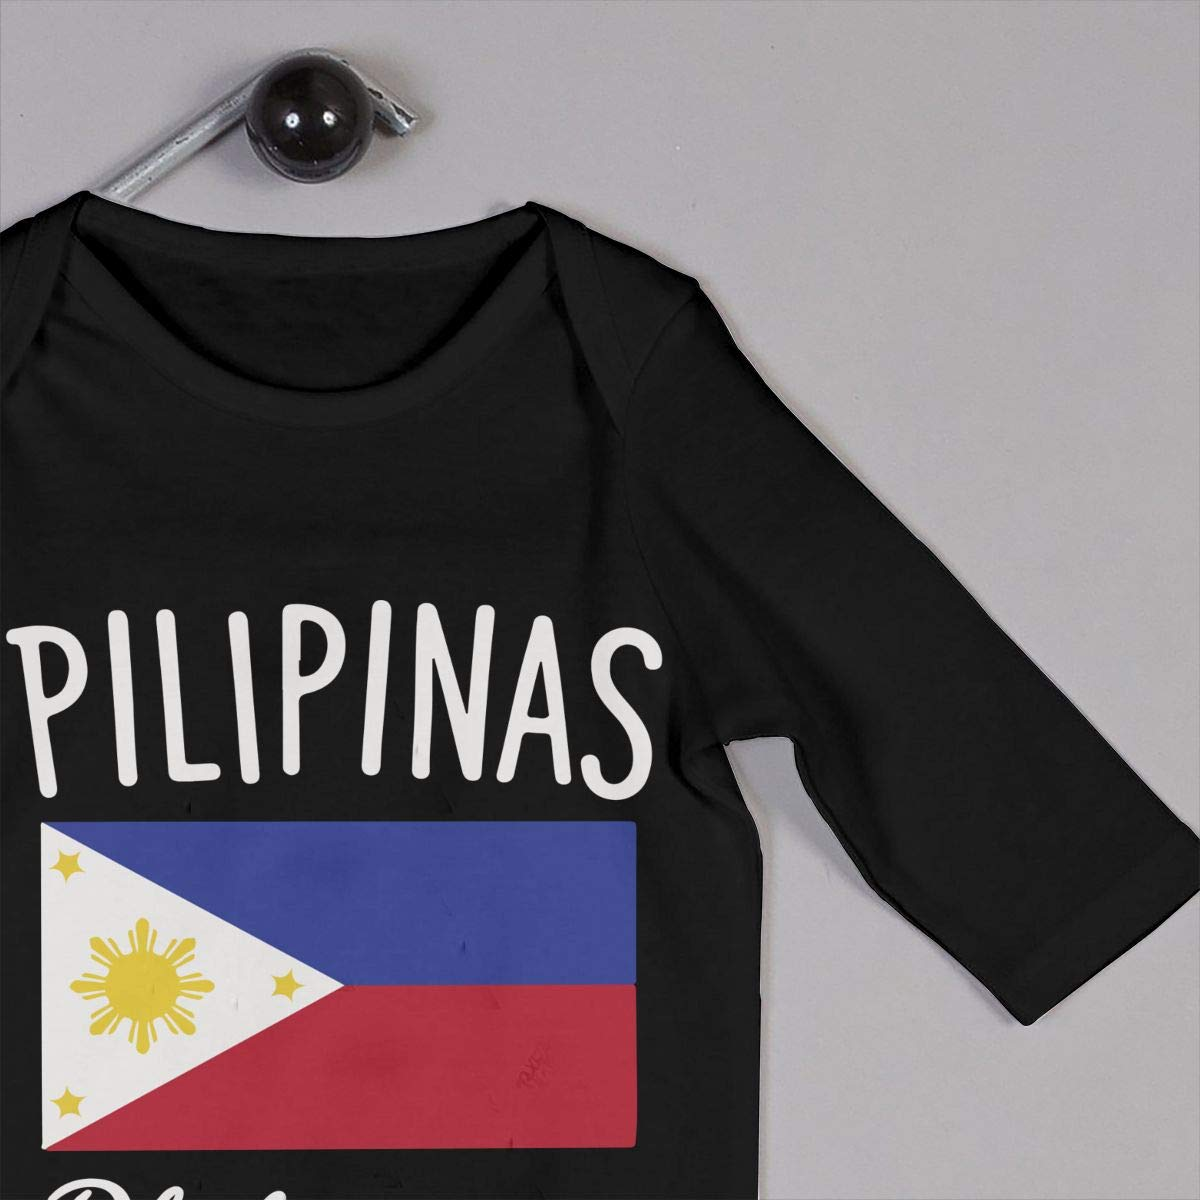 U99oi-9 Long Sleeve Cotton Rompers for Unisex Baby Cute Philippines Flag Onesies